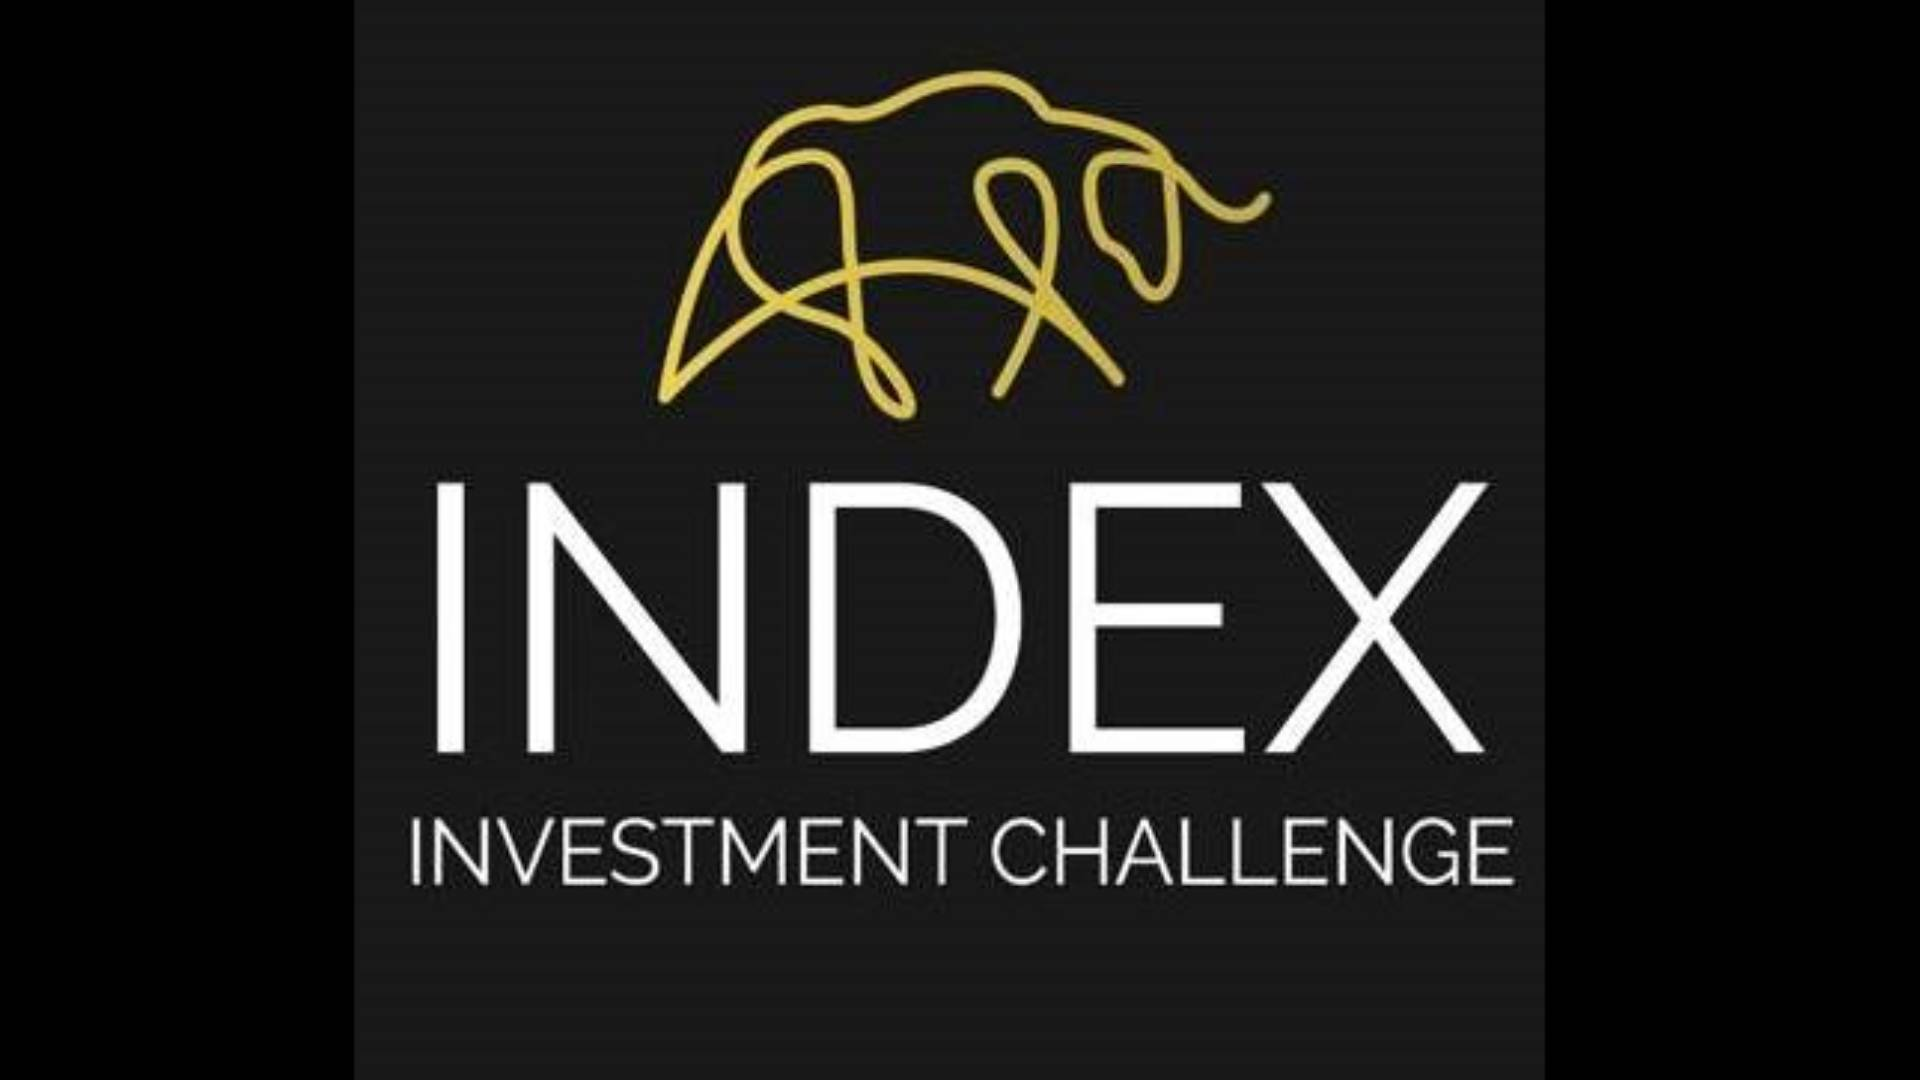 Index Investment Challenge